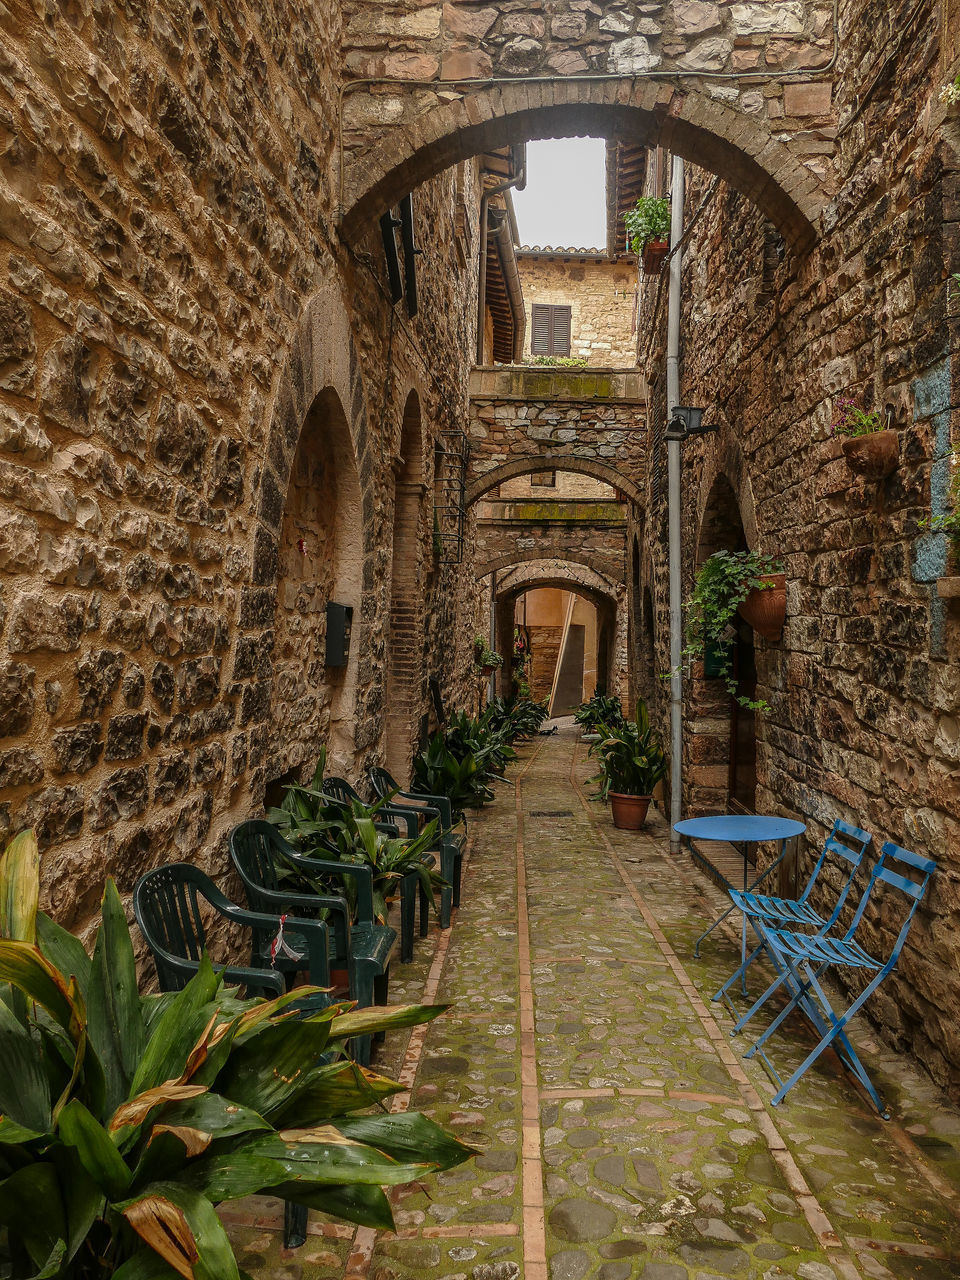 architecture, built structure, arch, building exterior, history, building, the past, day, no people, old, wall, ancient, nature, wall - building feature, the way forward, plant, stone wall, direction, outdoors, staircase, ruined, arched